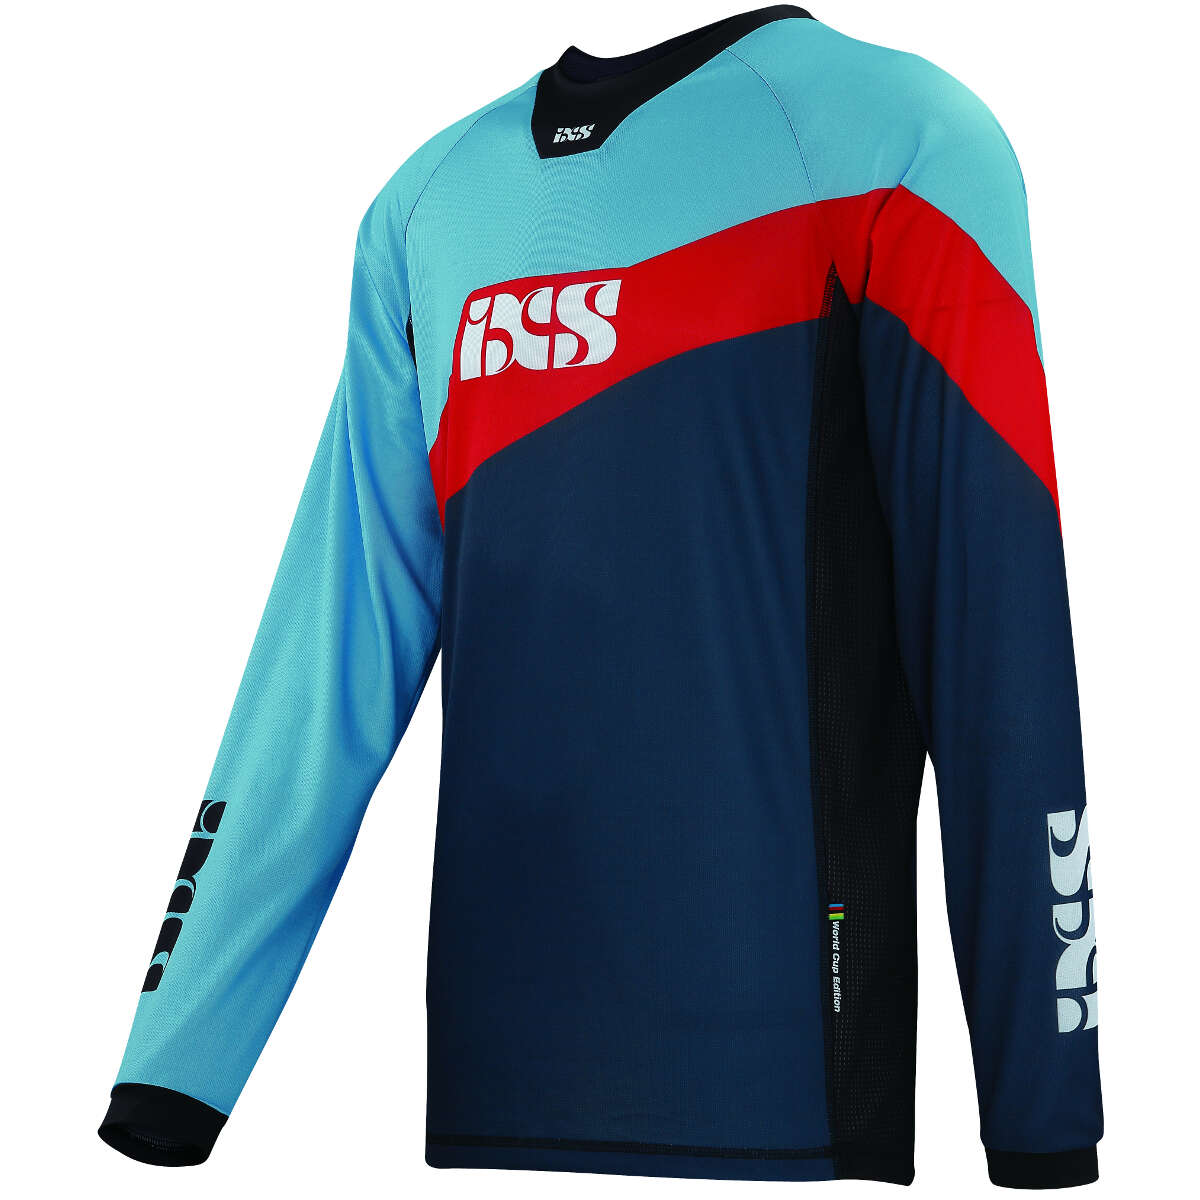 IXS Downhill-Jersey Race 7.1 Night Blau/Fluo Rot - Worldcup Worldcup - Edition 203e5c